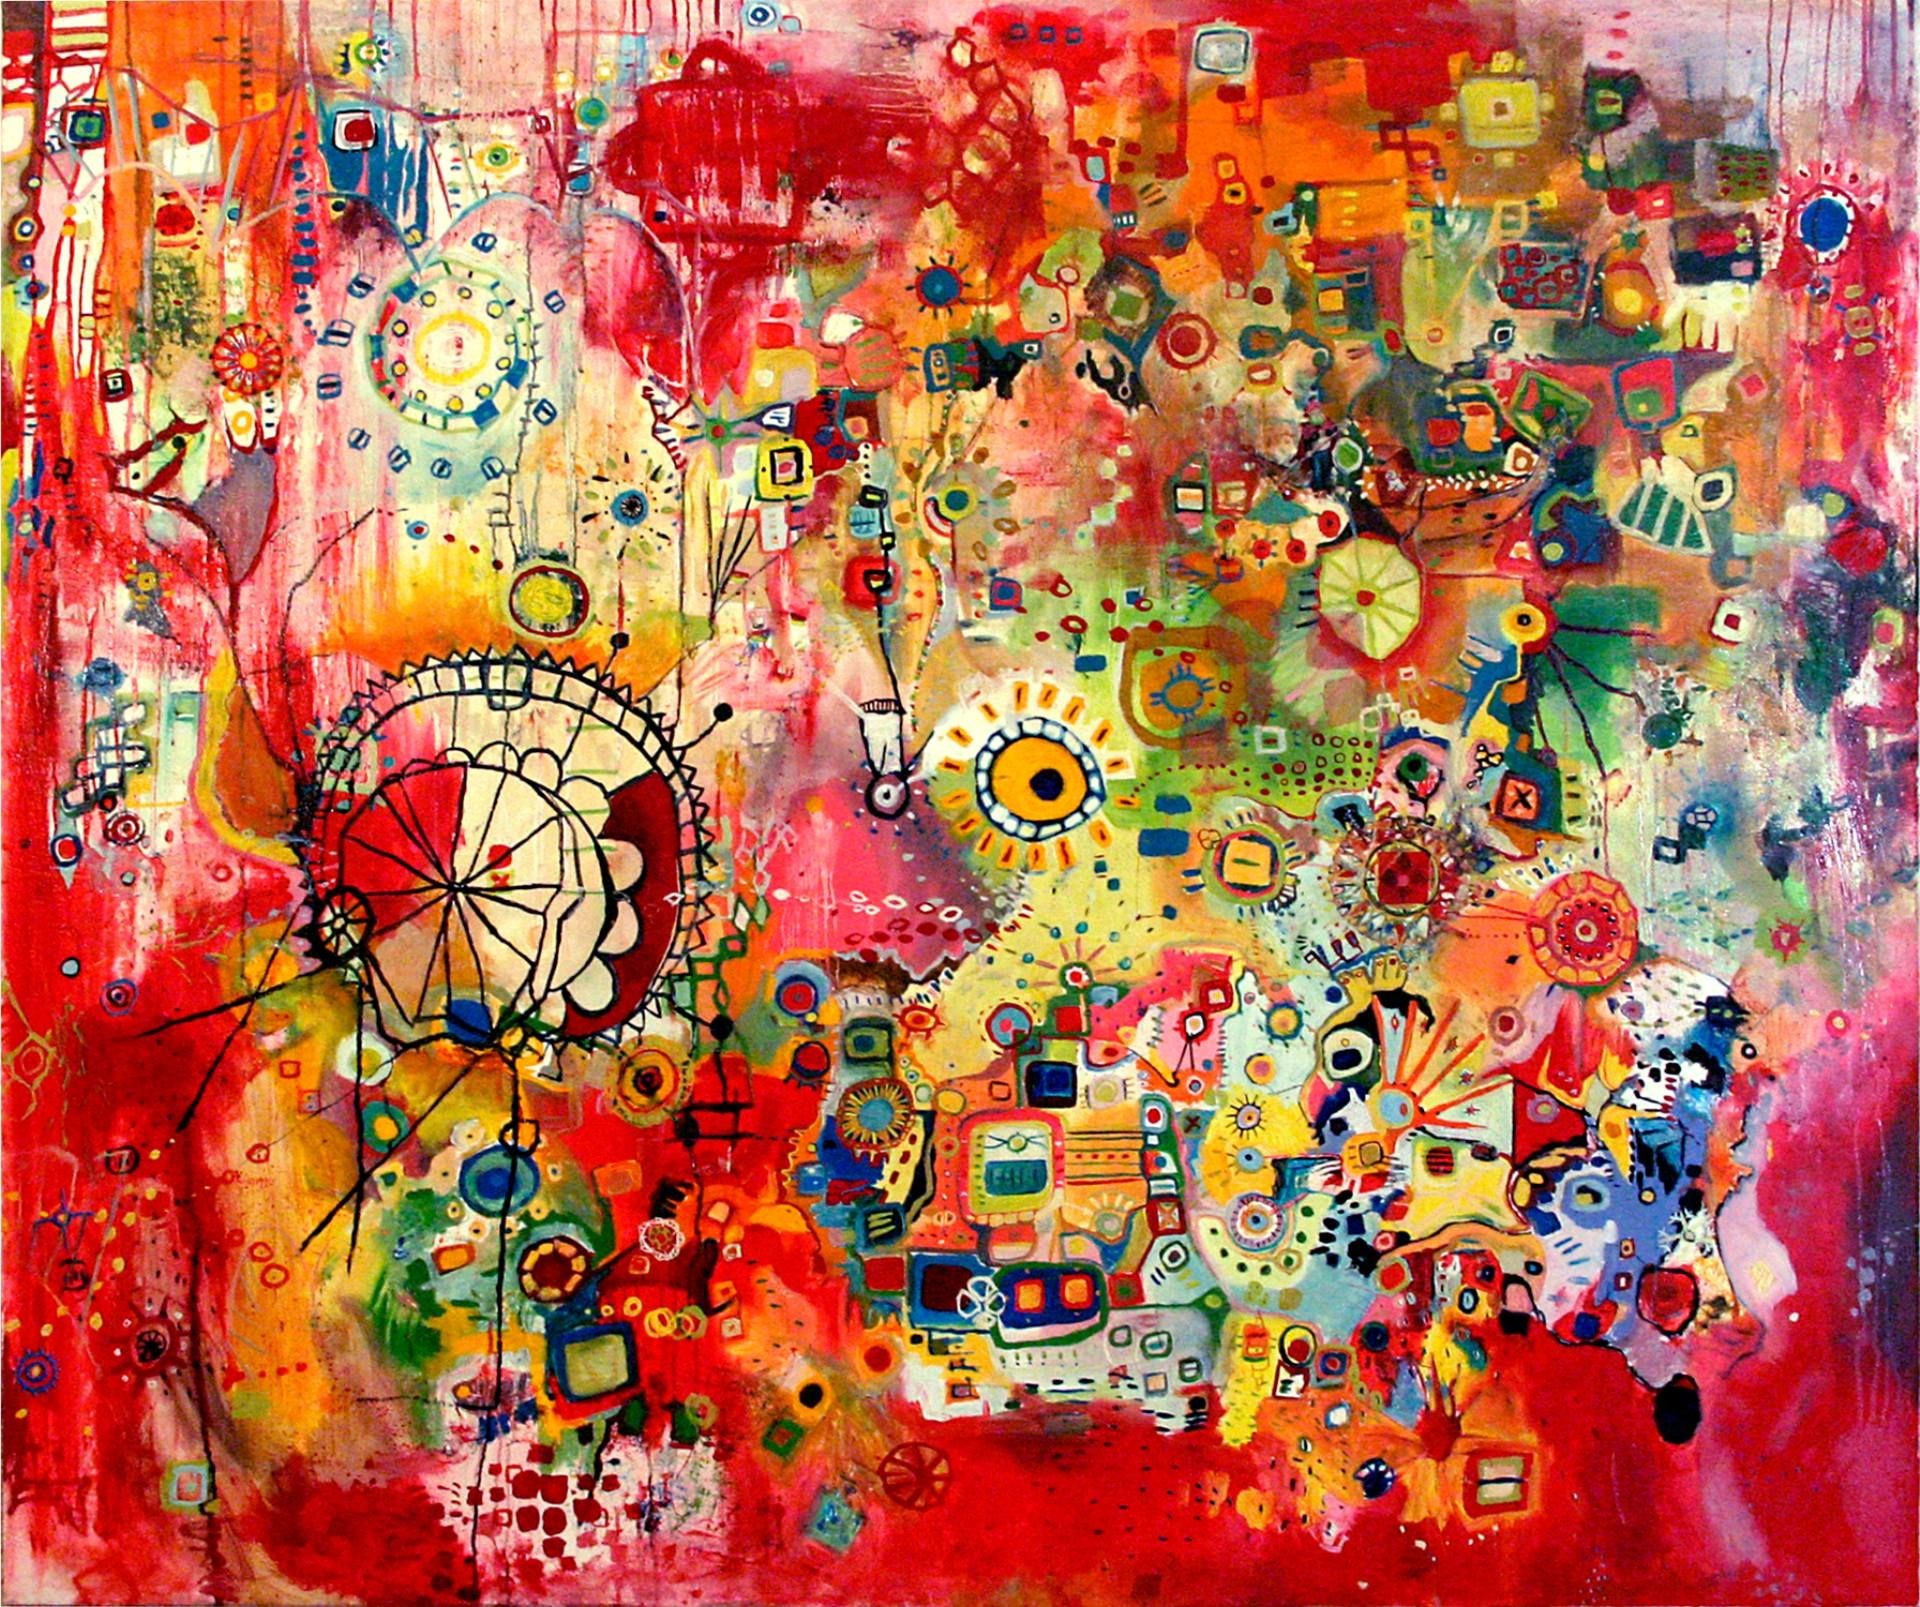 Miss Colombia Sold A Oil On By Clara Fialho From United States It Portrays Abstract Relevant To Paint Abstract Art Painting Abstract Art Collection Art